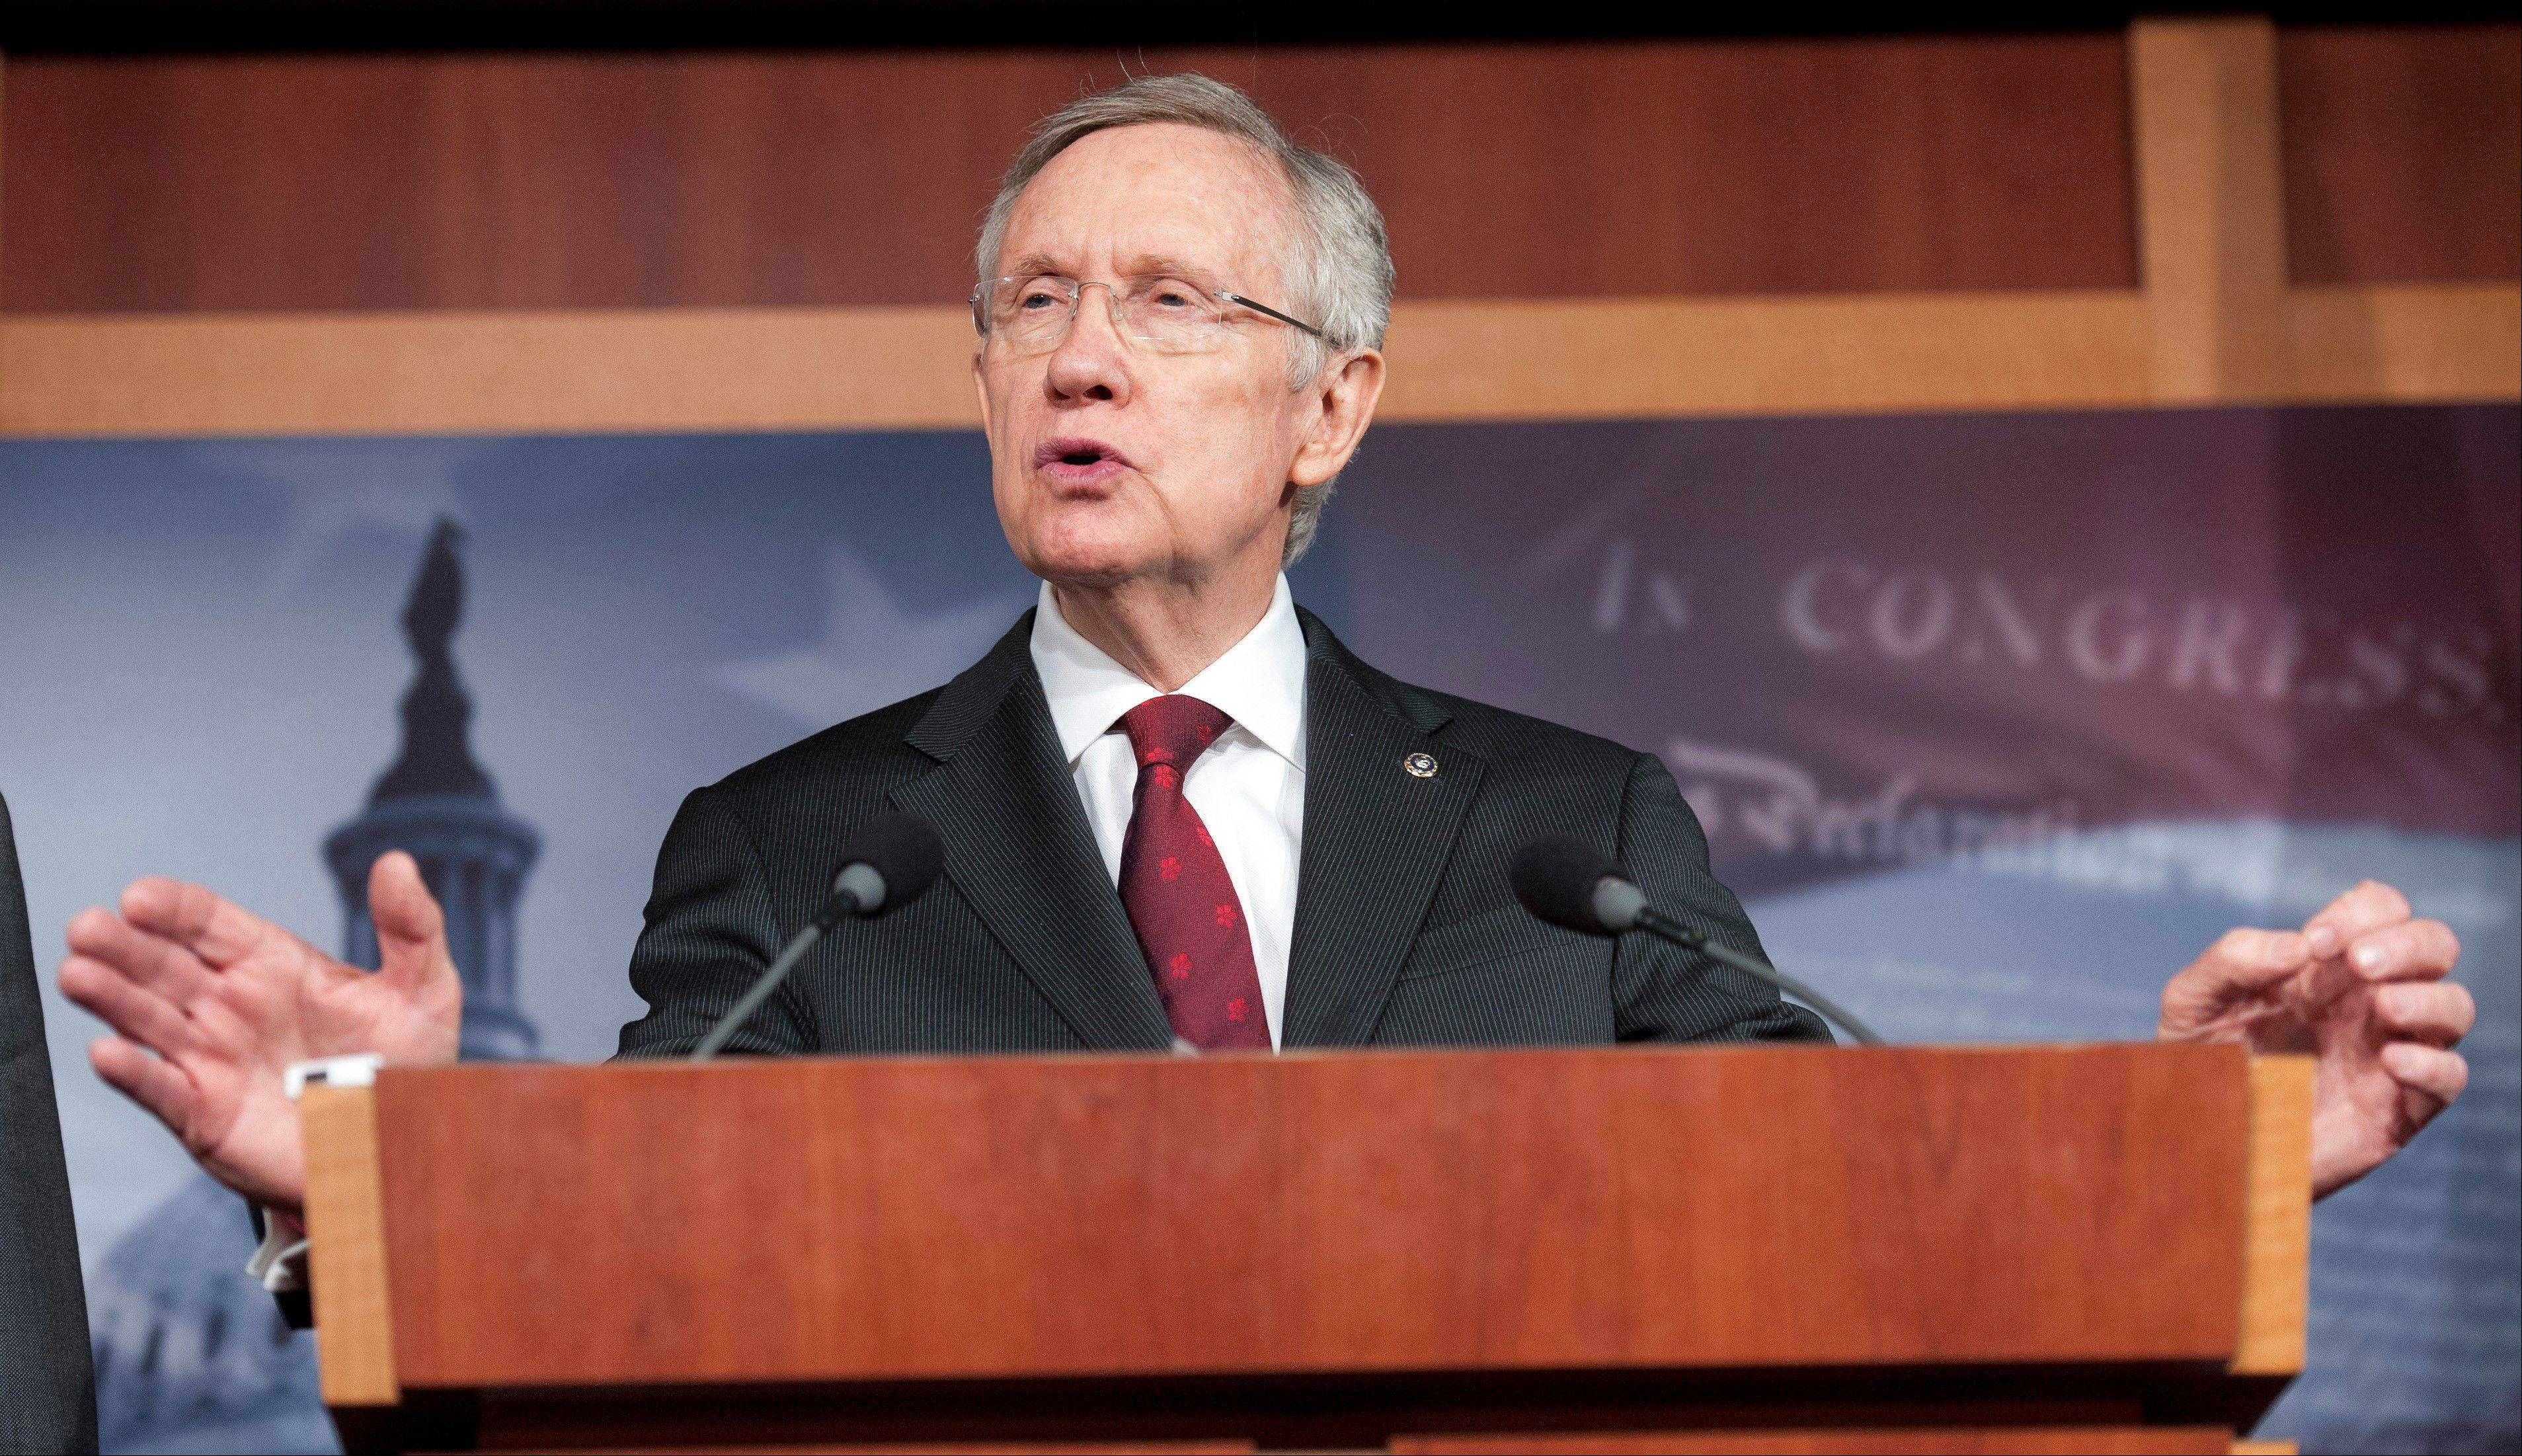 Senate Majority Leader Harry Reid, D-Nev., says gun control legislation the Senate debates next month will include an expansion of federal background checks for firearms buyers.